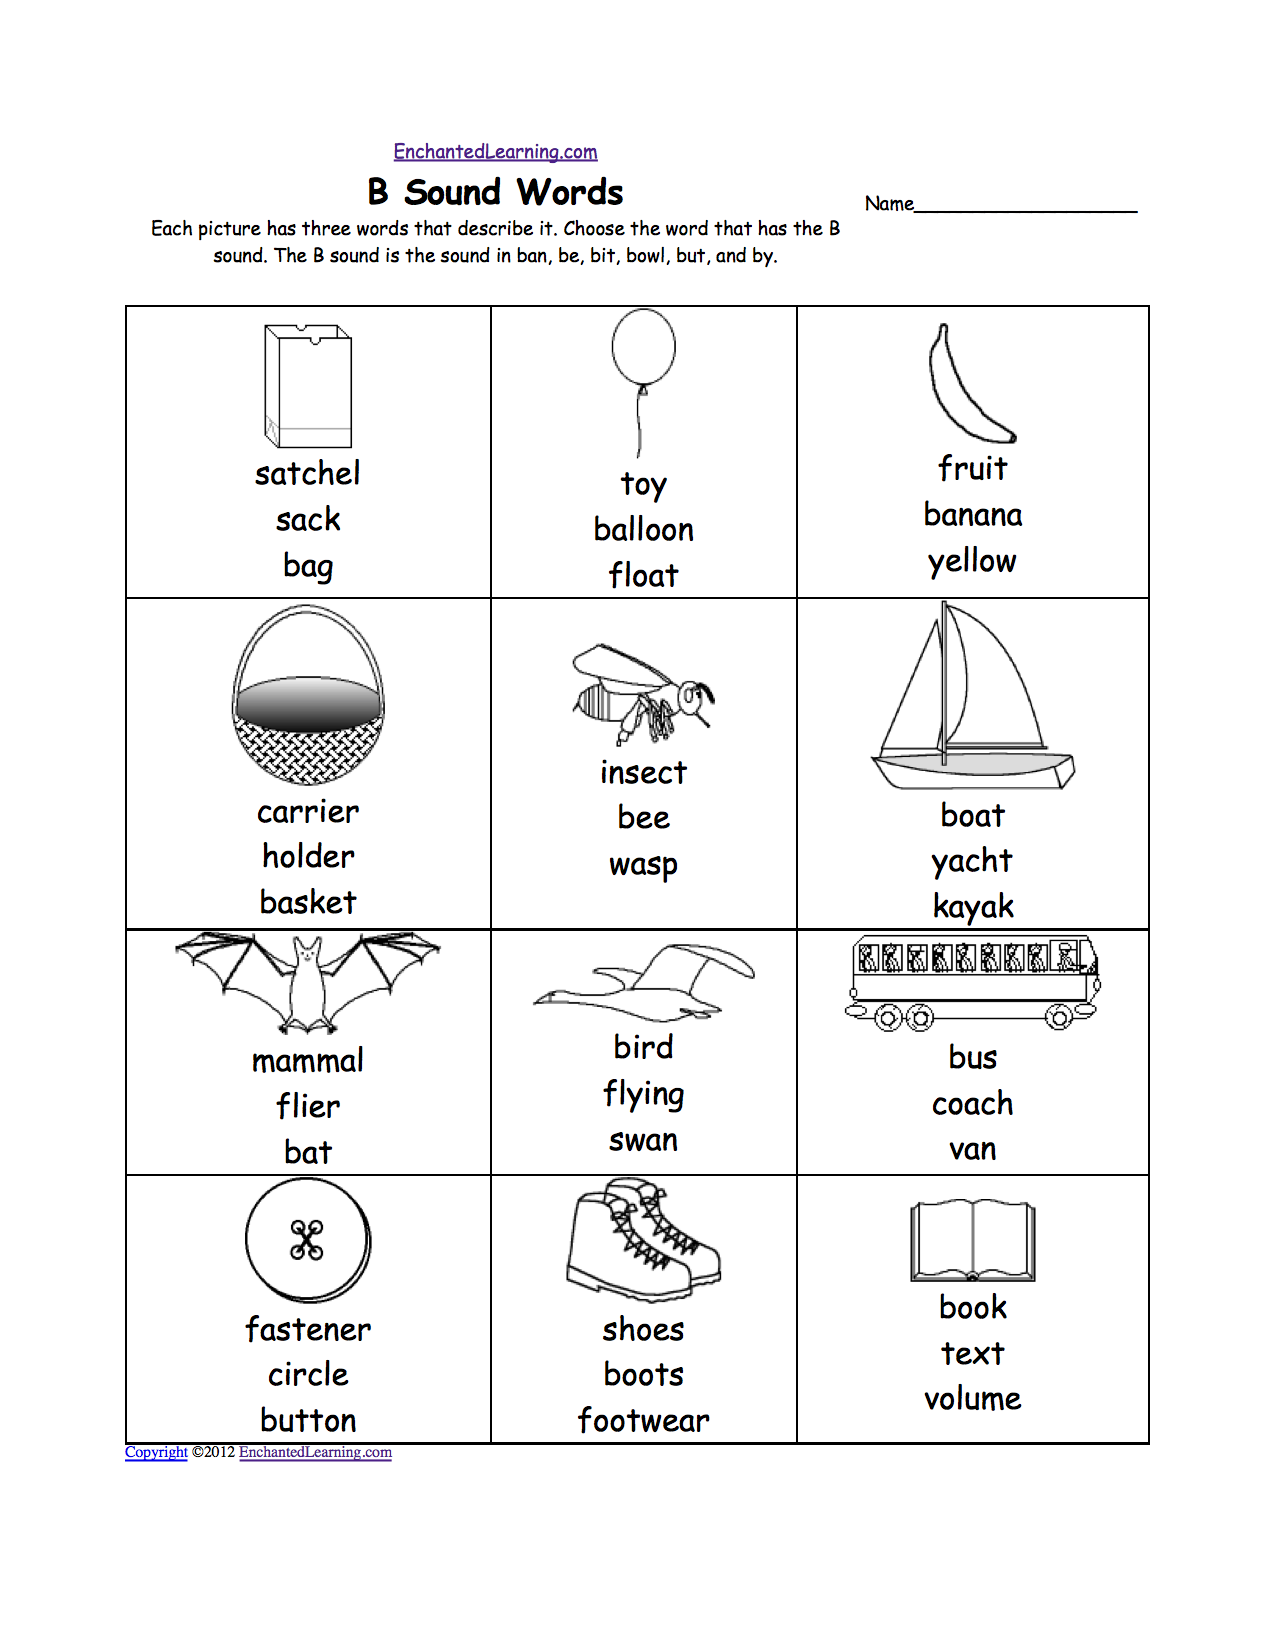 Weirdmailus  Pretty Phonics Worksheets Multiple Choice Worksheets To Print  With Heavenly Quotbquot Sound Phonics Worksheet Multiple Choice Each Picture Has Three Words That Describe It Choose The Word That Has A Quotbquot Sound The Quotbquot Sound Is The Sound  With Lovely Free Printable Story Sequencing Worksheets Also Maths Worksheet For Year  In Addition Adverbs Worksheet Grade  And Contractions Worksheets Free As Well As Editing Worksheets Grade  Additionally Worksheets For Singular And Plural From Enchantedlearningcom With Weirdmailus  Heavenly Phonics Worksheets Multiple Choice Worksheets To Print  With Lovely Quotbquot Sound Phonics Worksheet Multiple Choice Each Picture Has Three Words That Describe It Choose The Word That Has A Quotbquot Sound The Quotbquot Sound Is The Sound  And Pretty Free Printable Story Sequencing Worksheets Also Maths Worksheet For Year  In Addition Adverbs Worksheet Grade  From Enchantedlearningcom